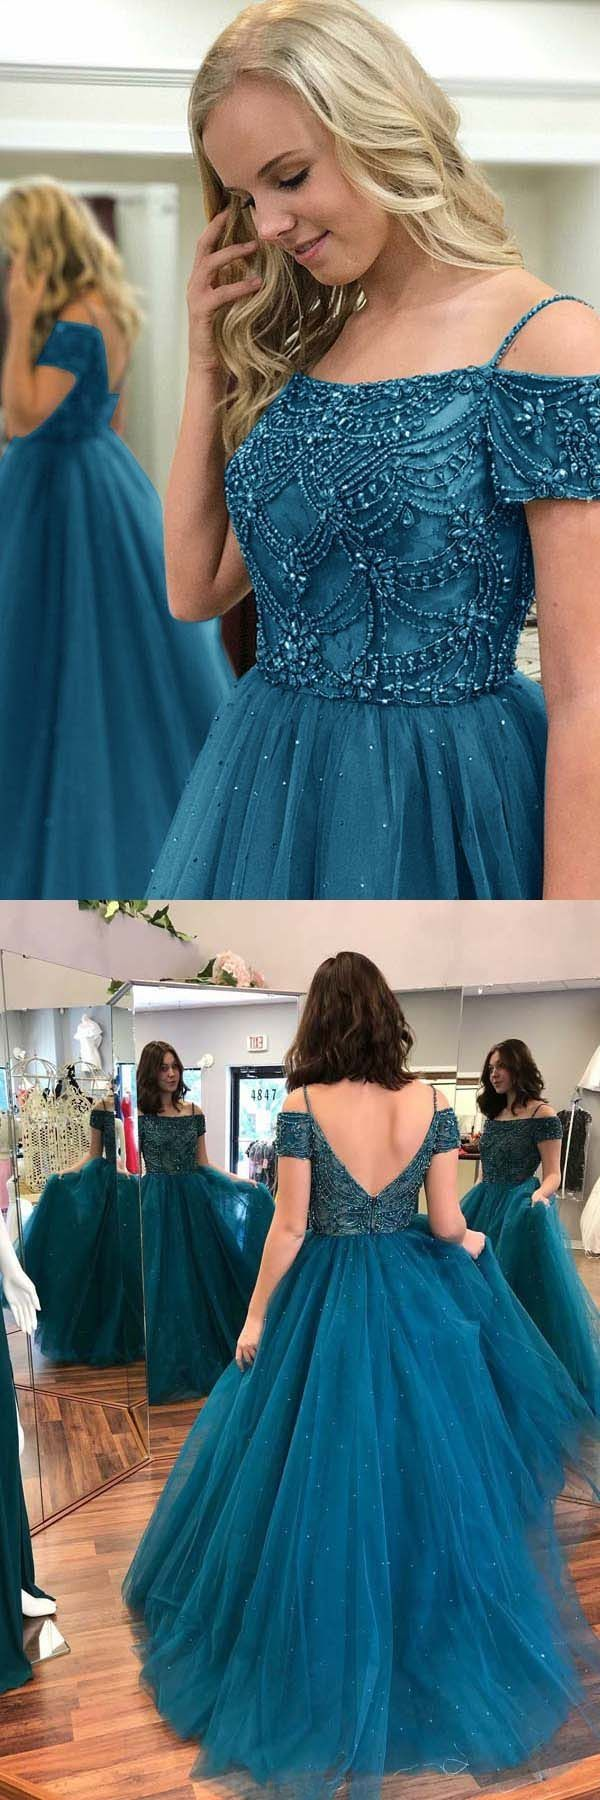 Customized popular simple lace prom dresses ball gown offthe